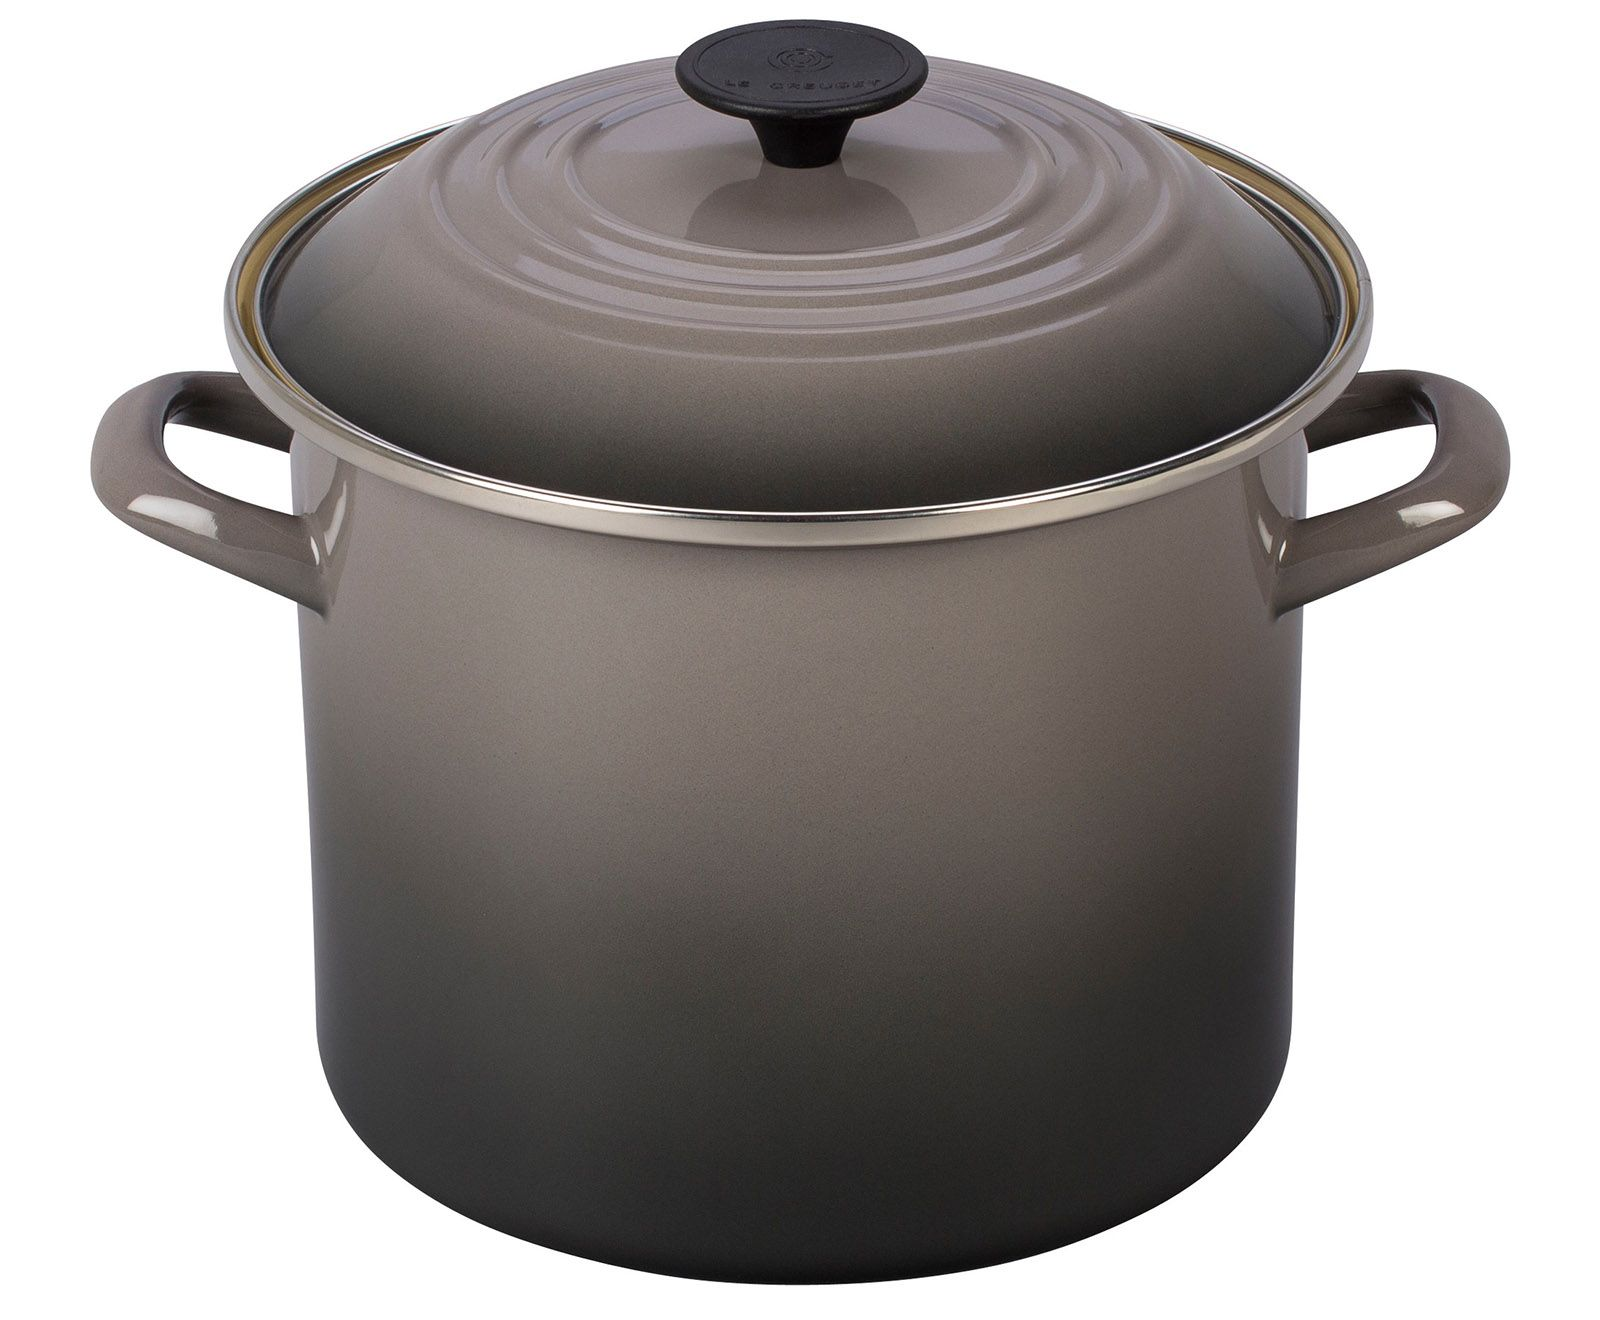 Le Creuset Stockpot Oyster Steel Rims Hot Steam Profile Design